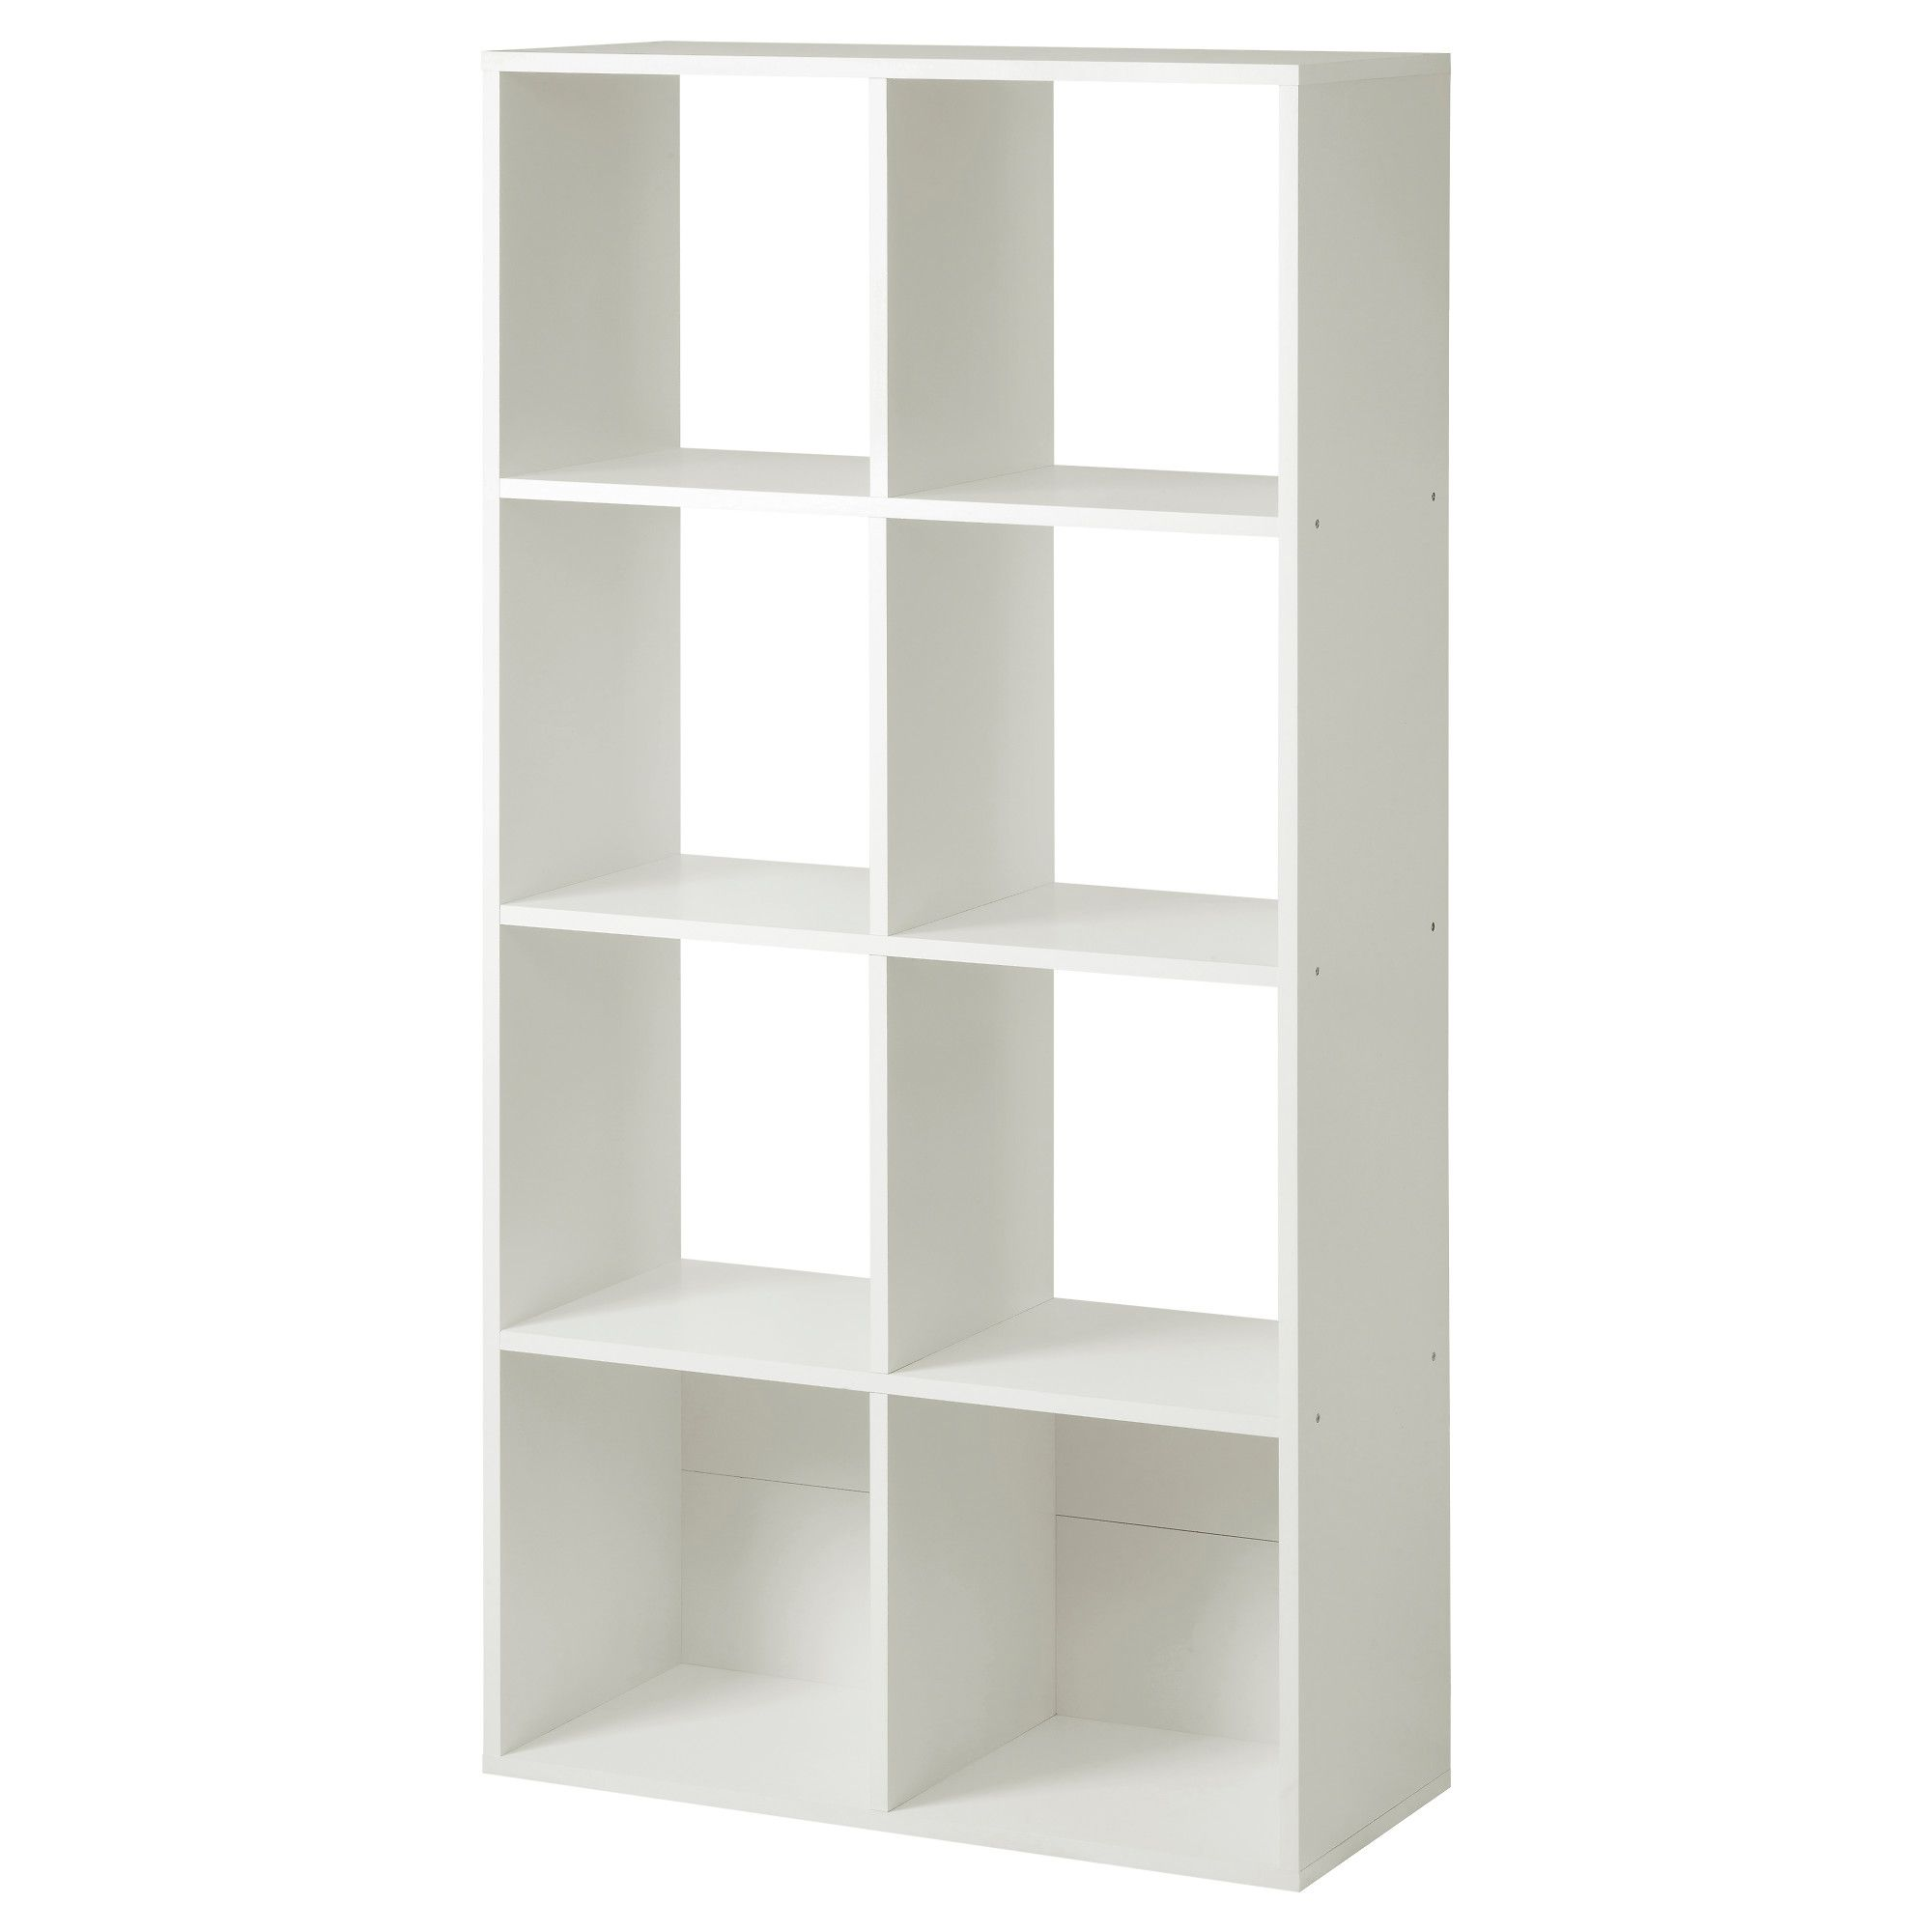 Entry Sideboard Bitr De Shelving Unit Ikea 34 99 First  # Bibliotheque Expedit Ikea Occasion